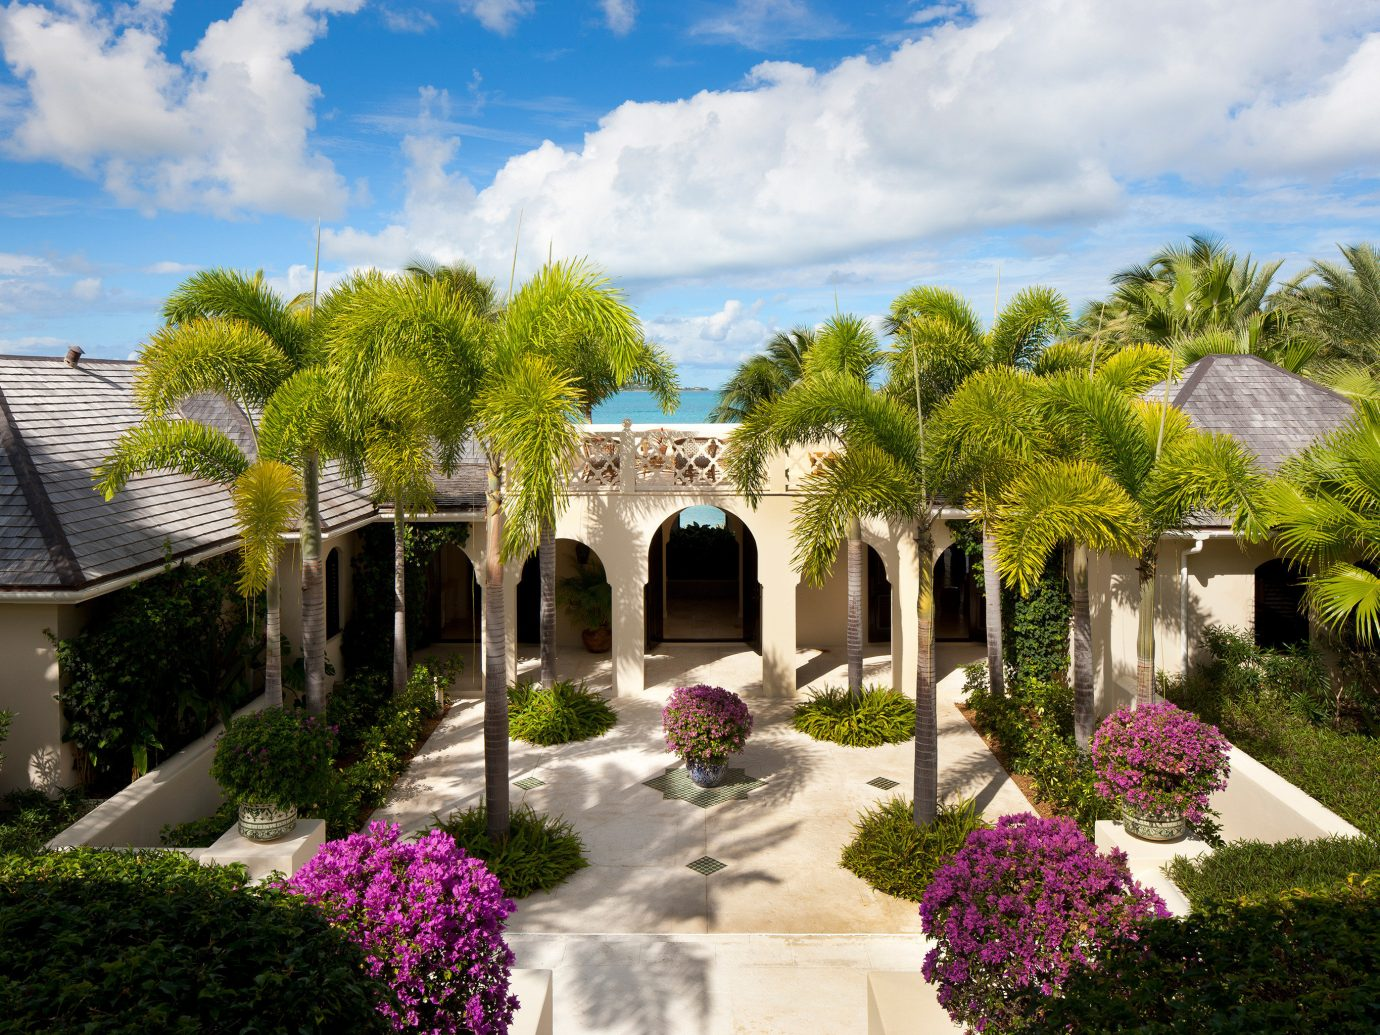 All-inclusive Beach Beachfront Courtyard Exterior Garden Grounds Hotels Island Luxury Resort Trip Ideas Waterfront tree sky outdoor flower property estate flora house home vacation mansion Villa real estate hacienda backyard plant yard lawn Village surrounded stone